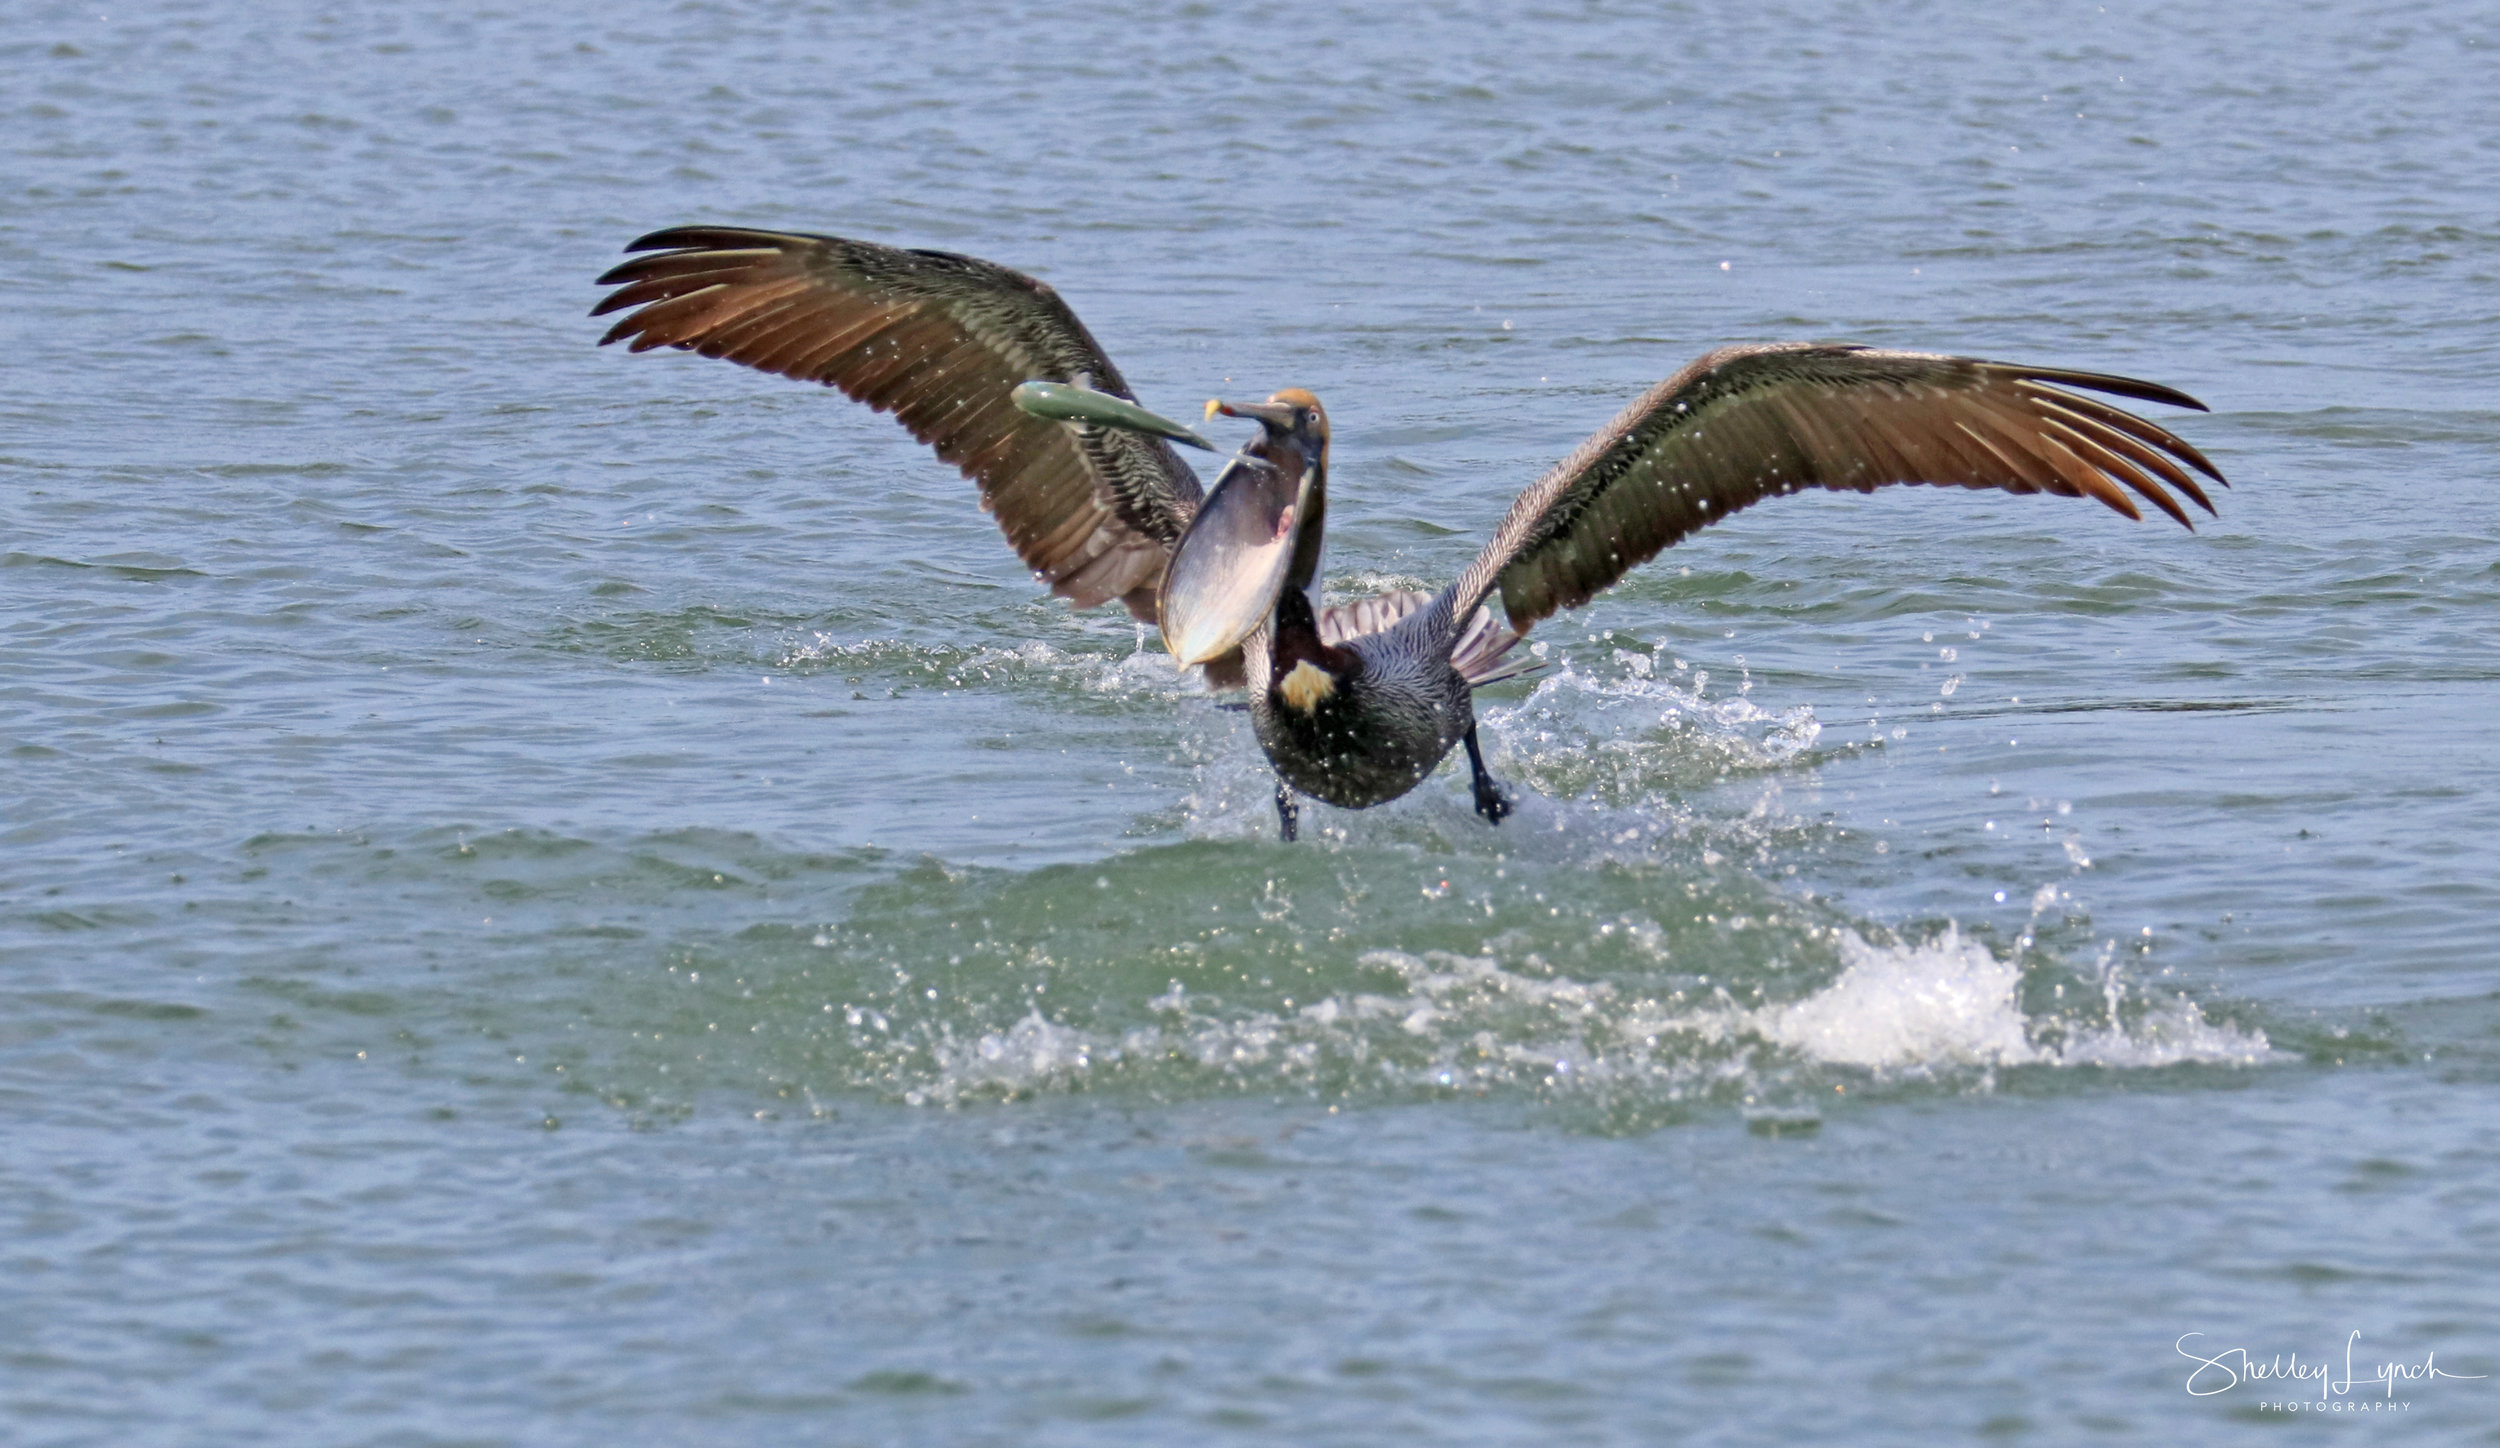 A dolphin threw this fish to the pelican.